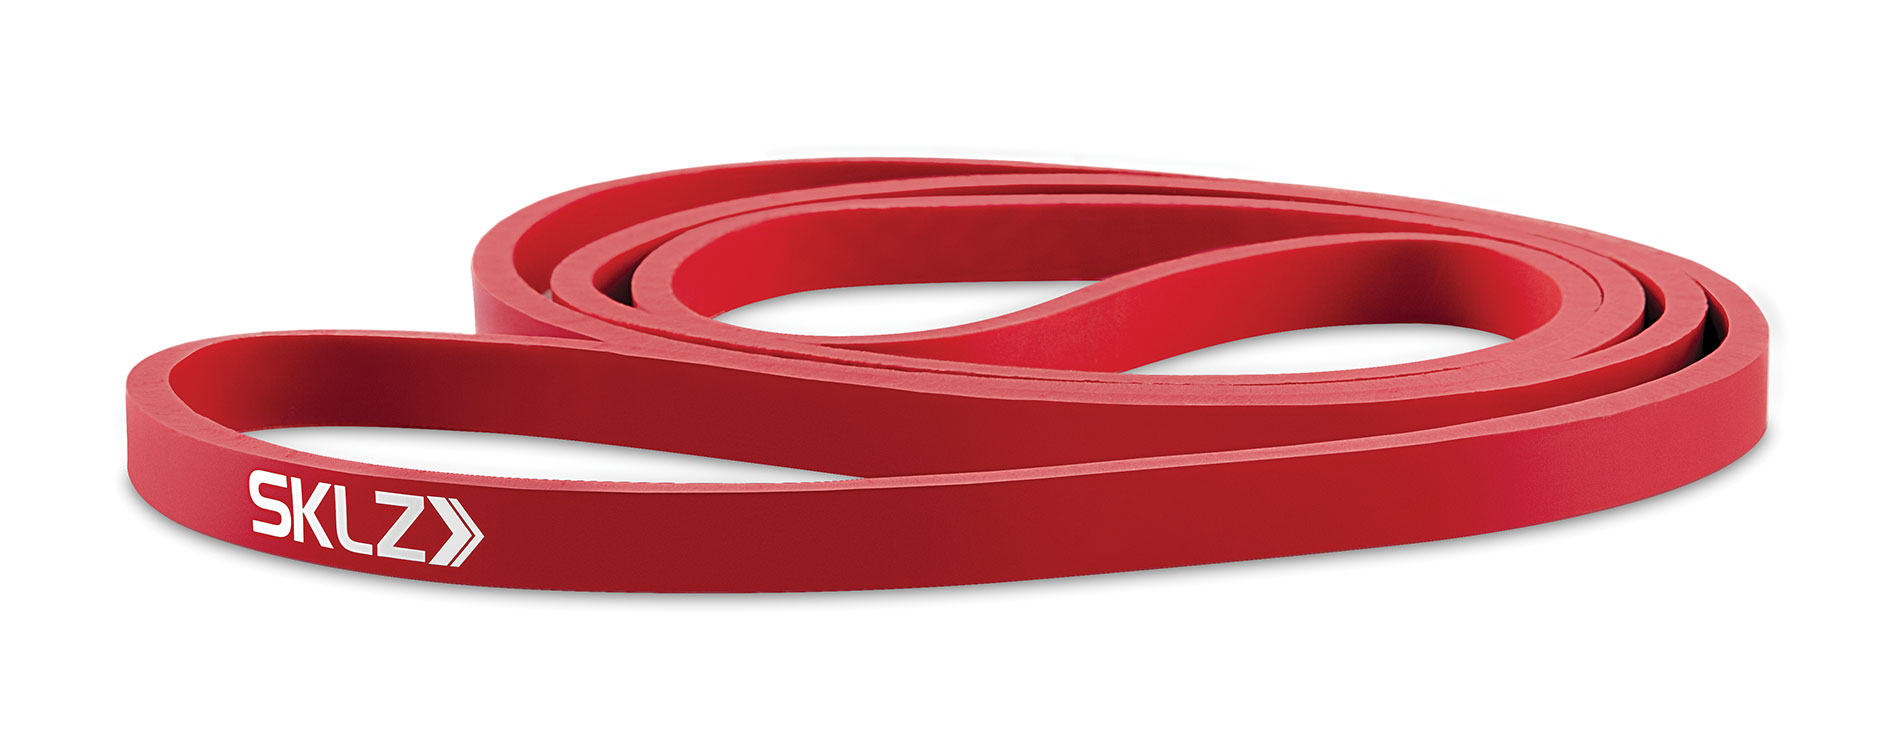 SKLZ Pro Bands Medium Red | Træningsmåtter og svedcover